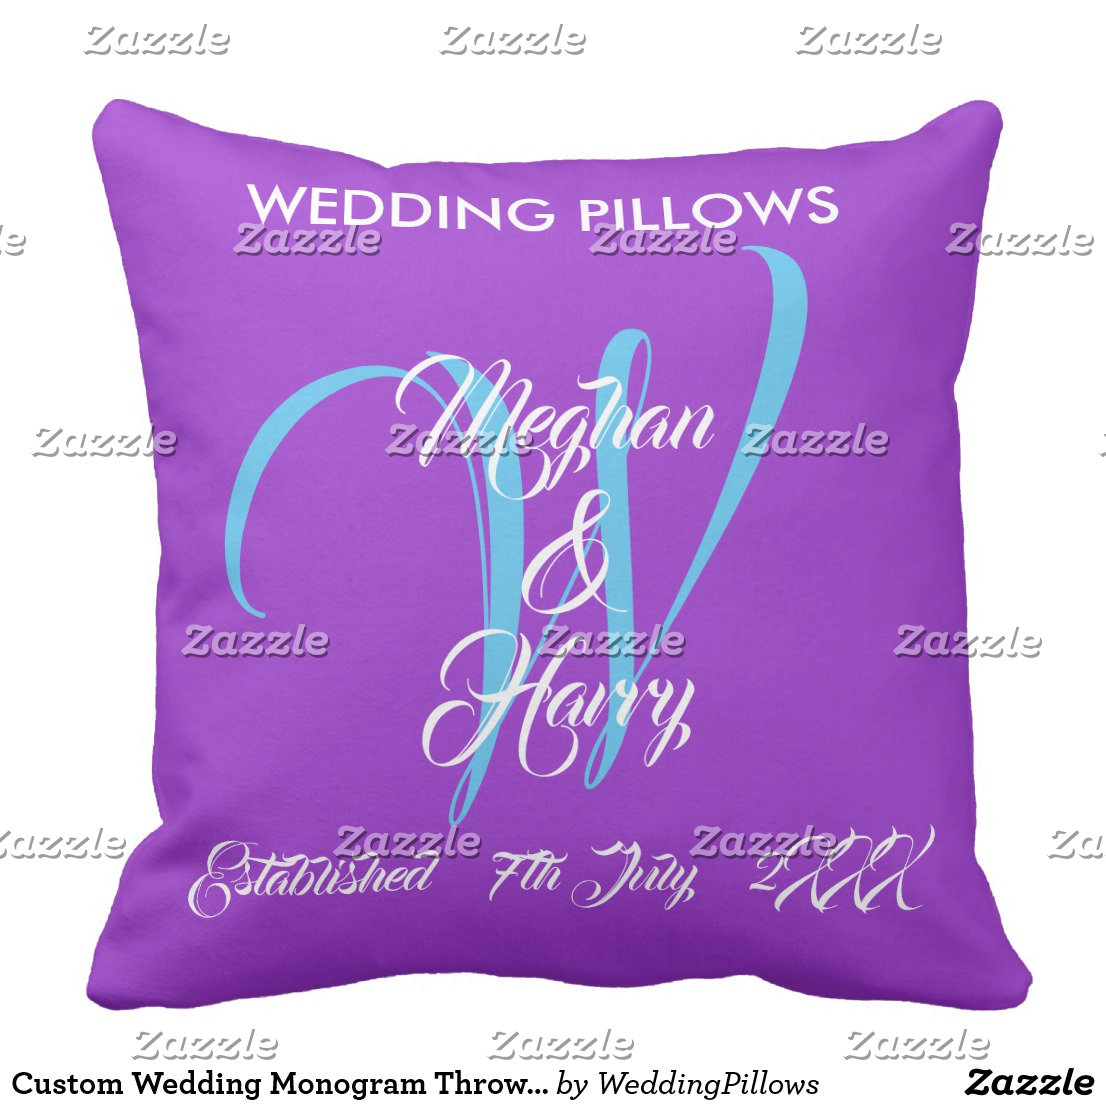 Bride & Groom Monogram Throw Pillows ORCHID PURPLE